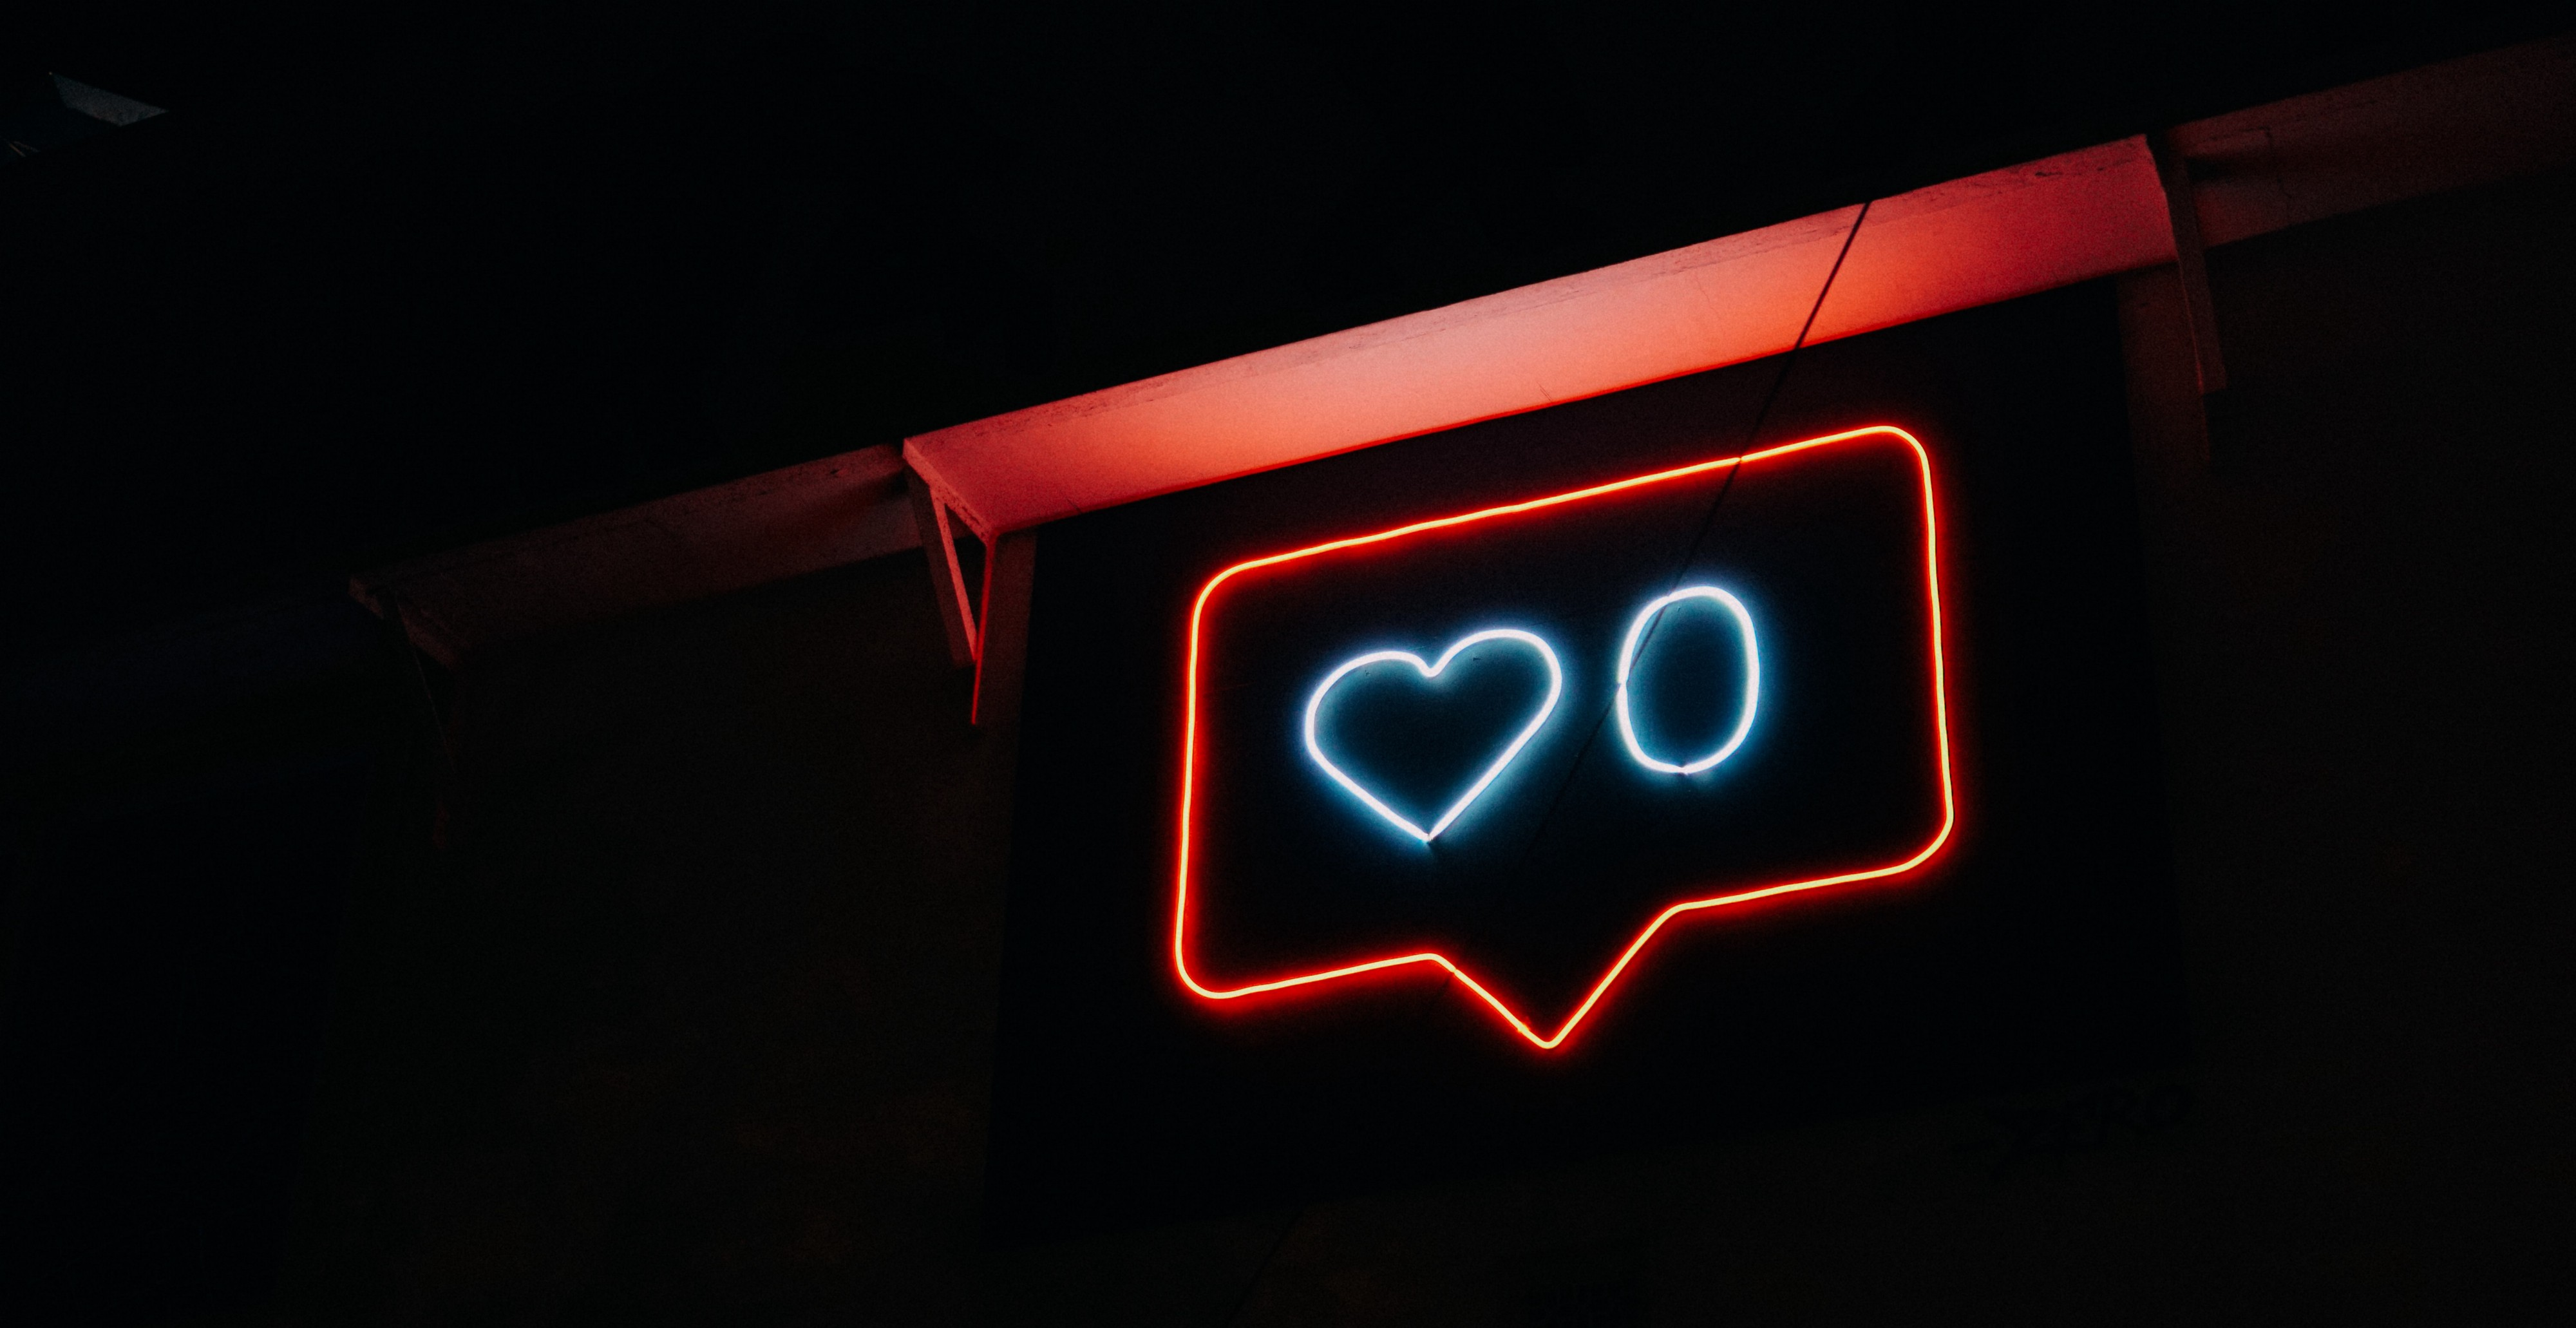 A neon light in the shape of a like button glows in a dark room.